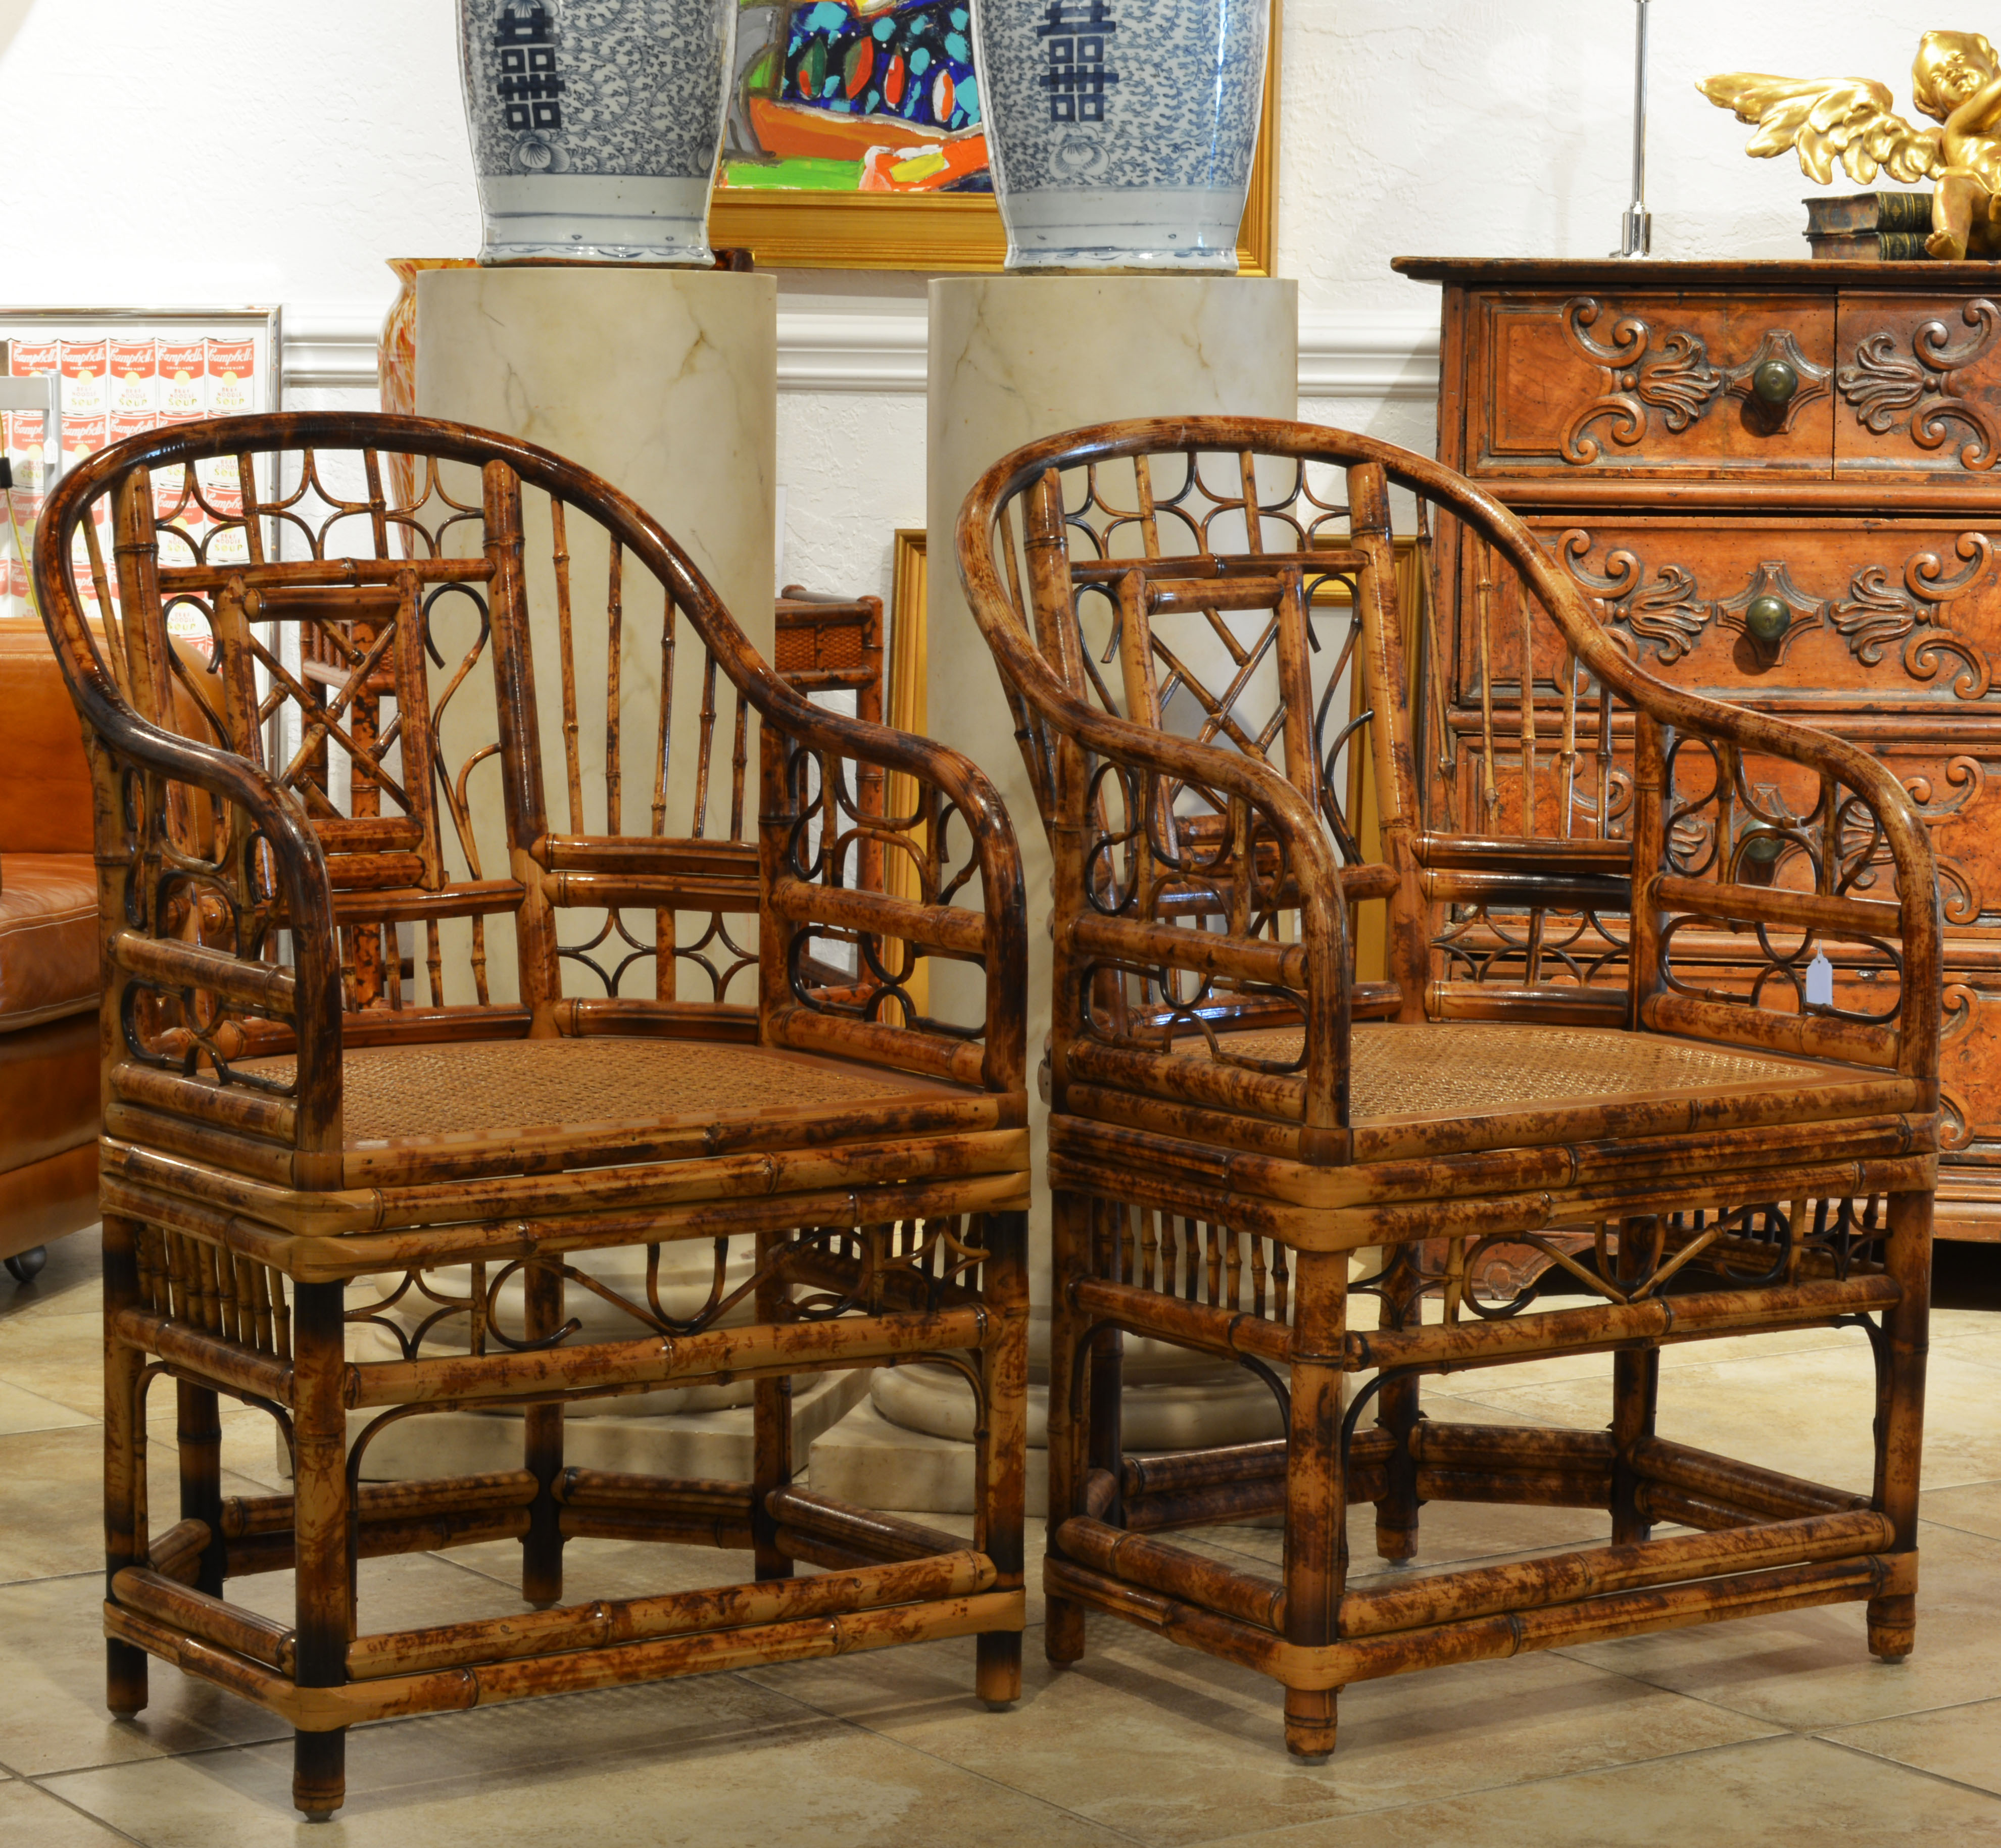 Bamboo chippendale chairs - A Pair Of Bamboo Chinoiserie Chippendale Style Arm Chairs With Cane Seats